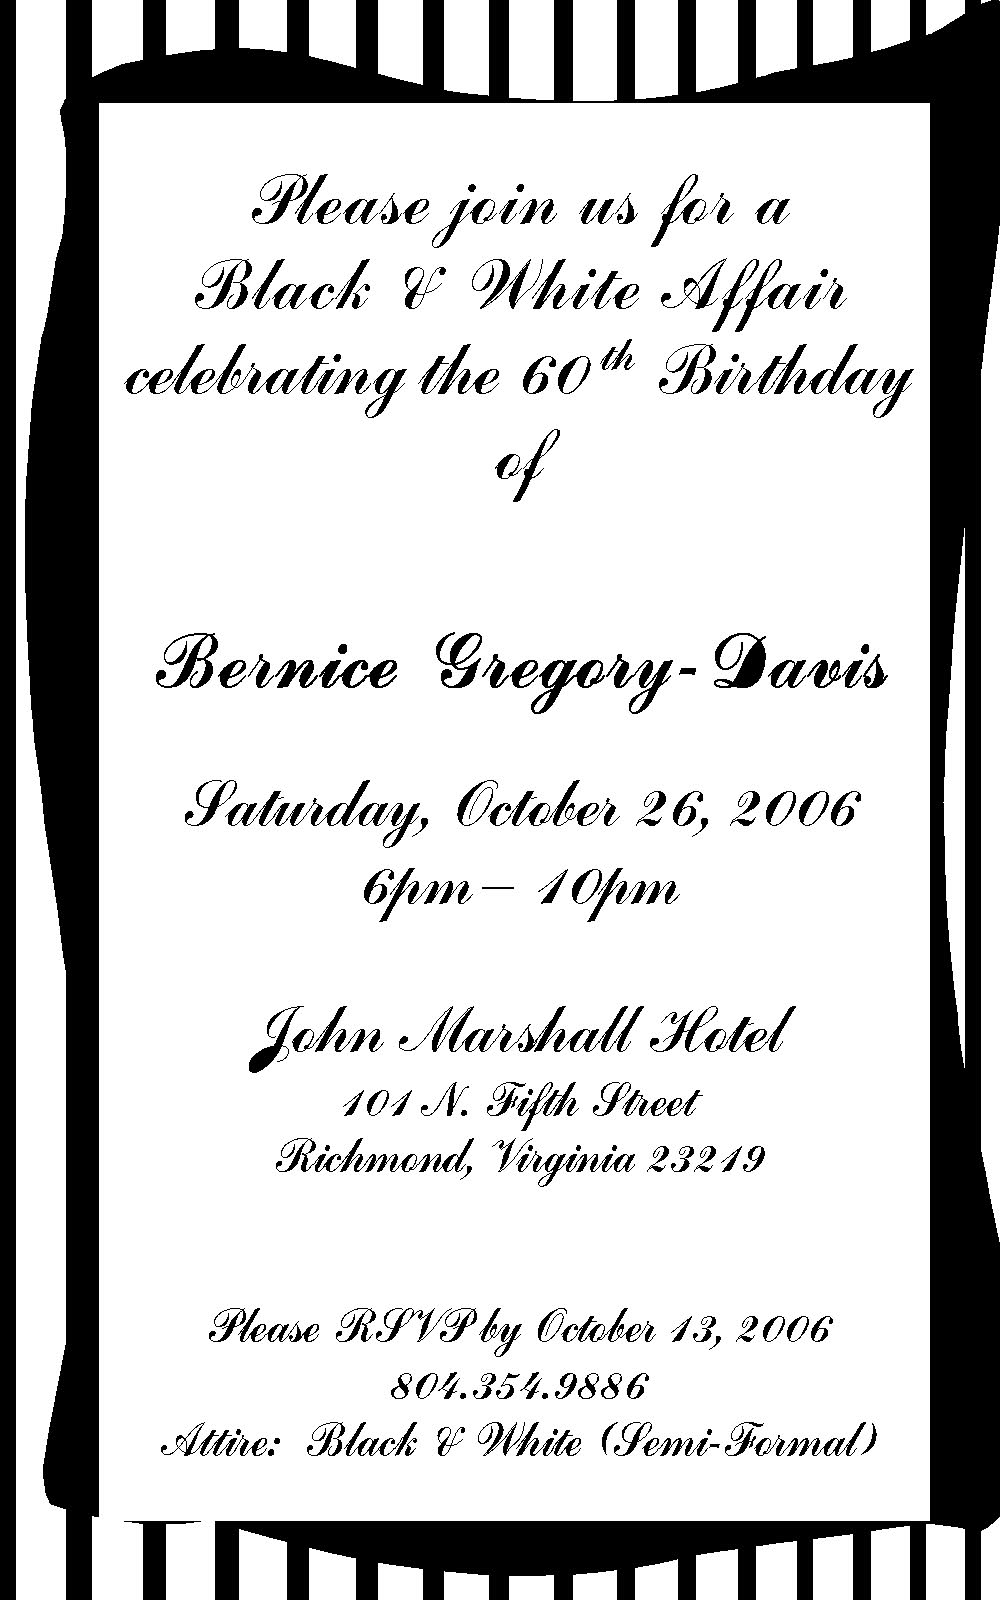 Birthday Invitation Wording Samples - Birthday invitation message examples